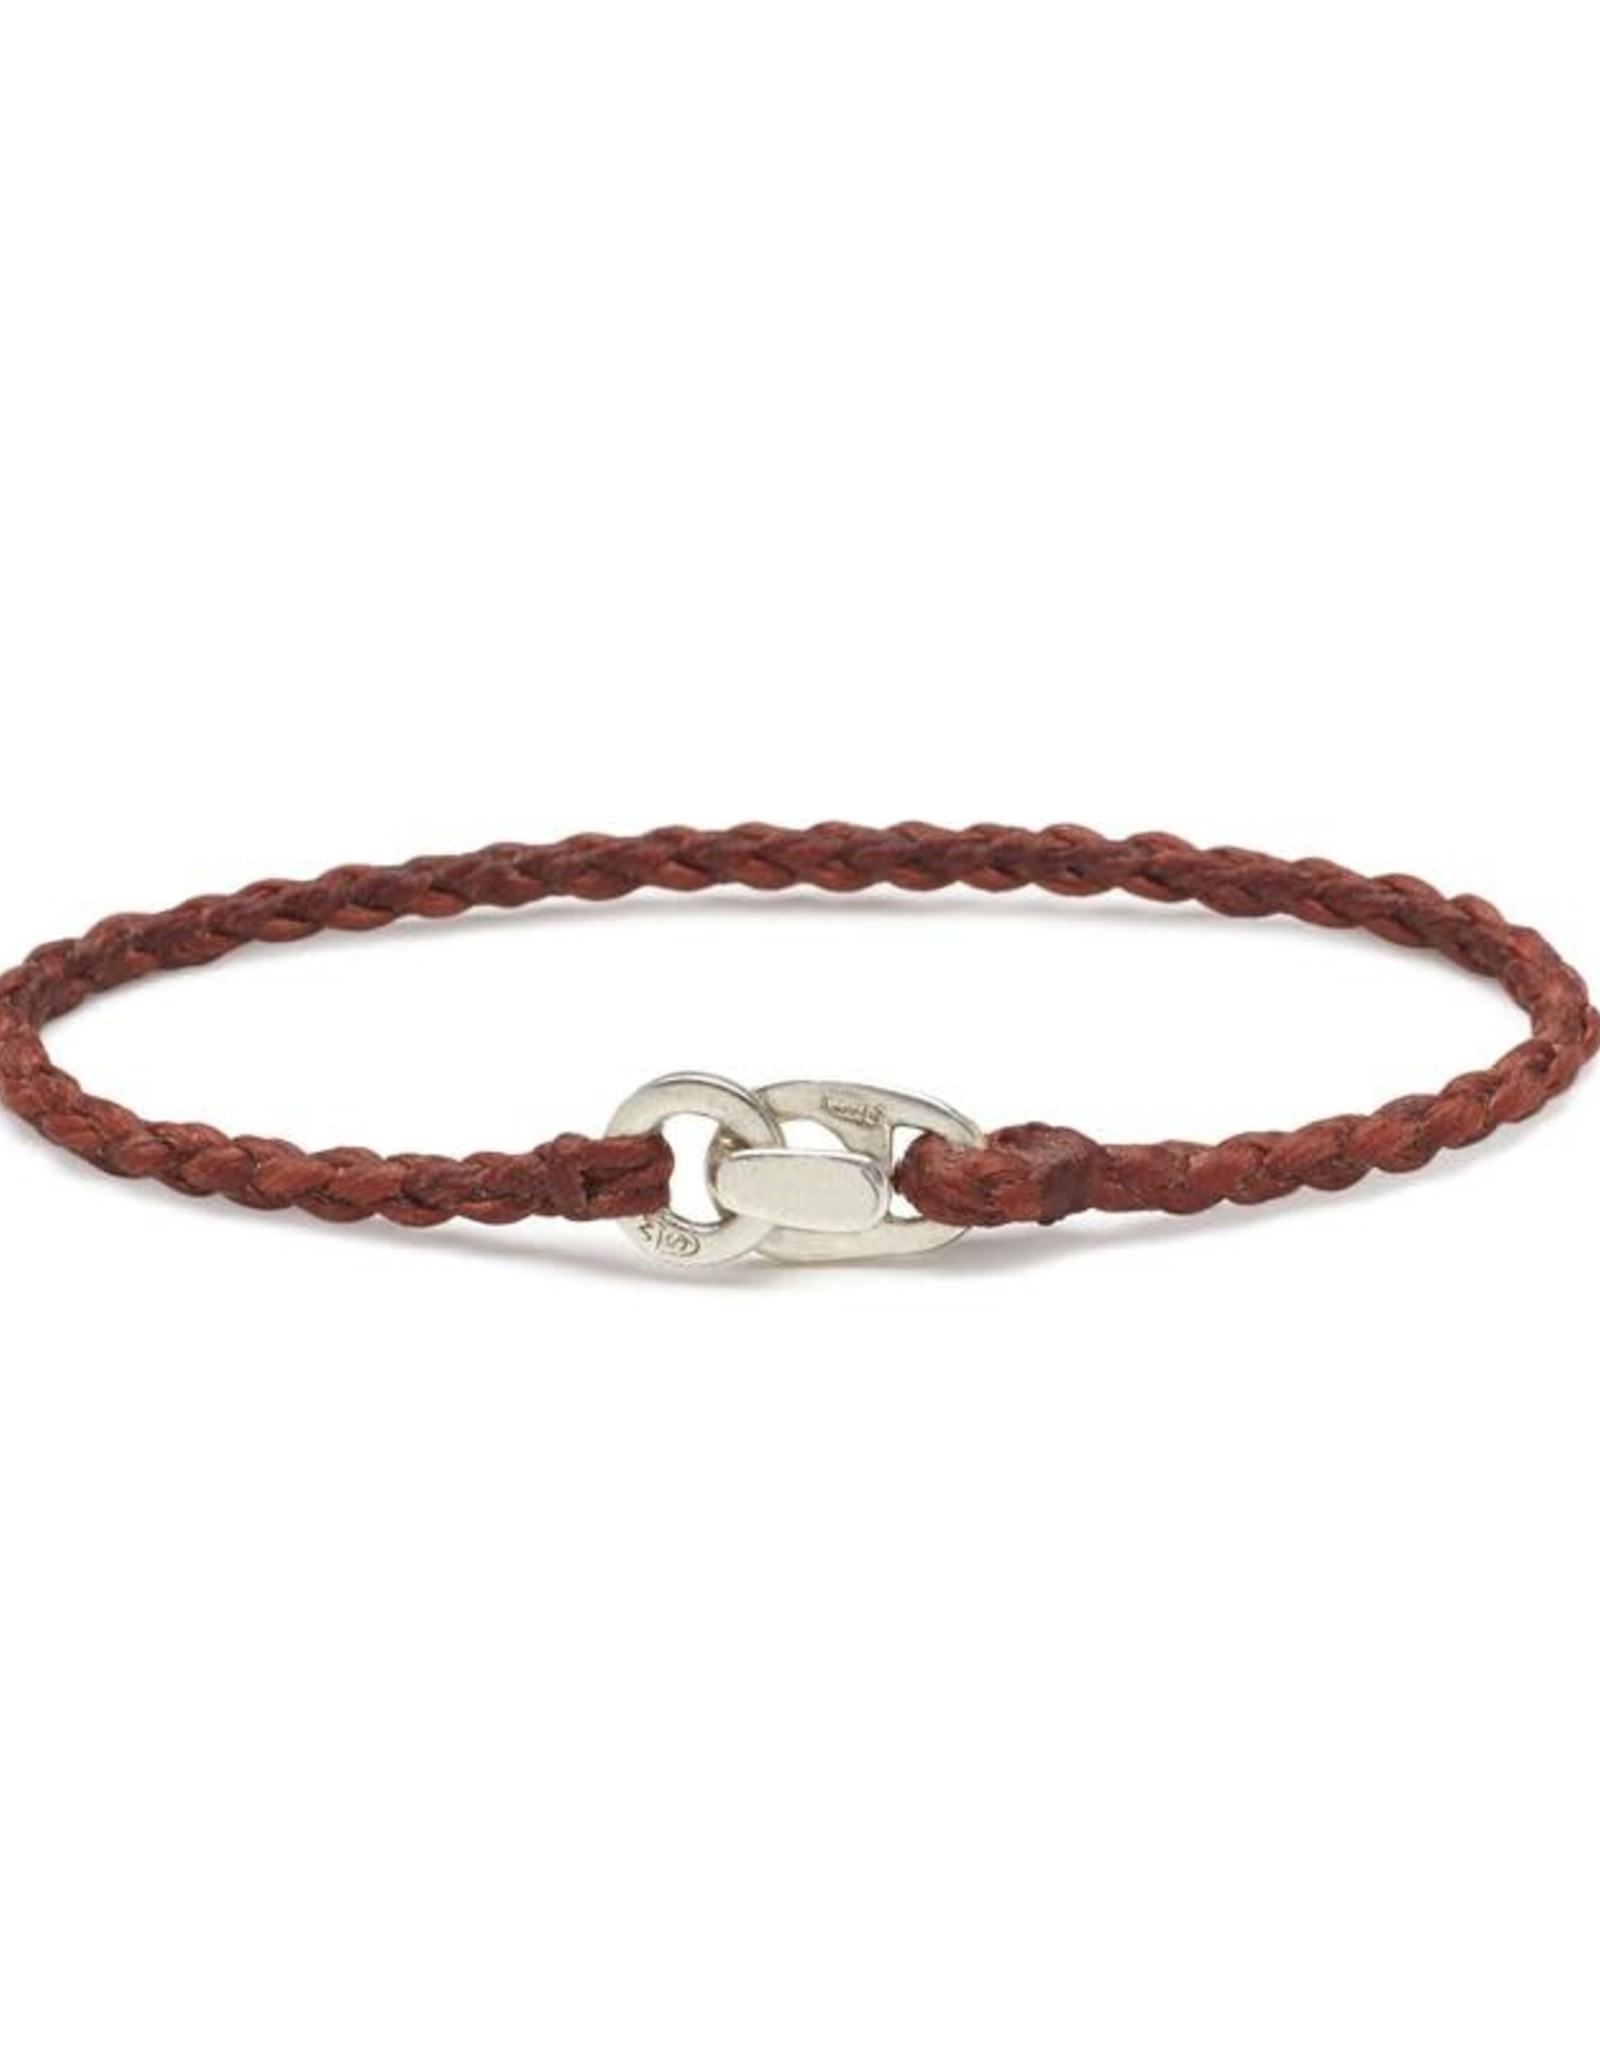 Scosha Single Wrap Silver Bracelet - Rust